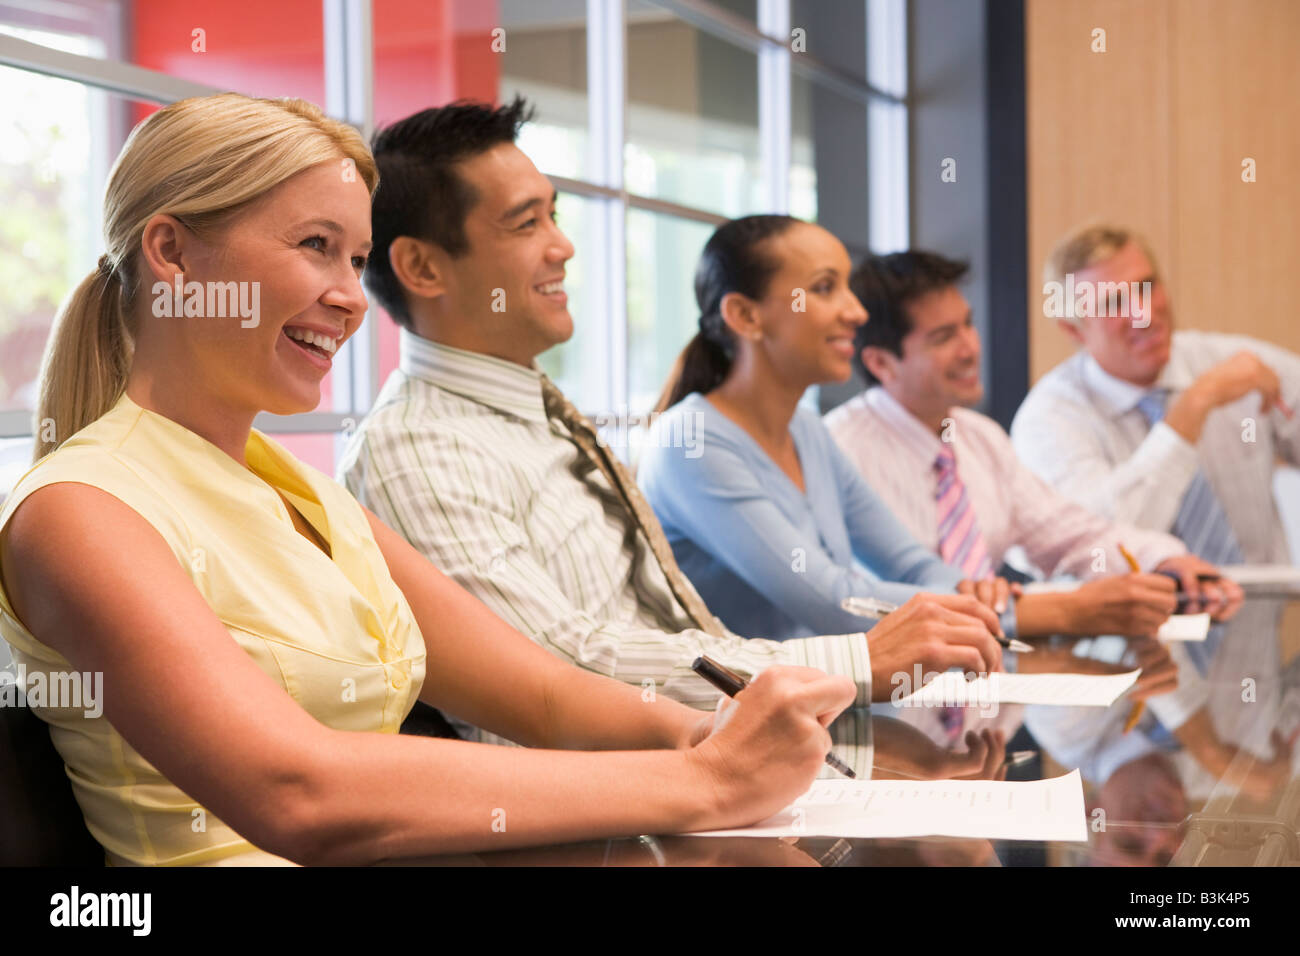 Five businesspeople at boardroom table smiling - Stock Image